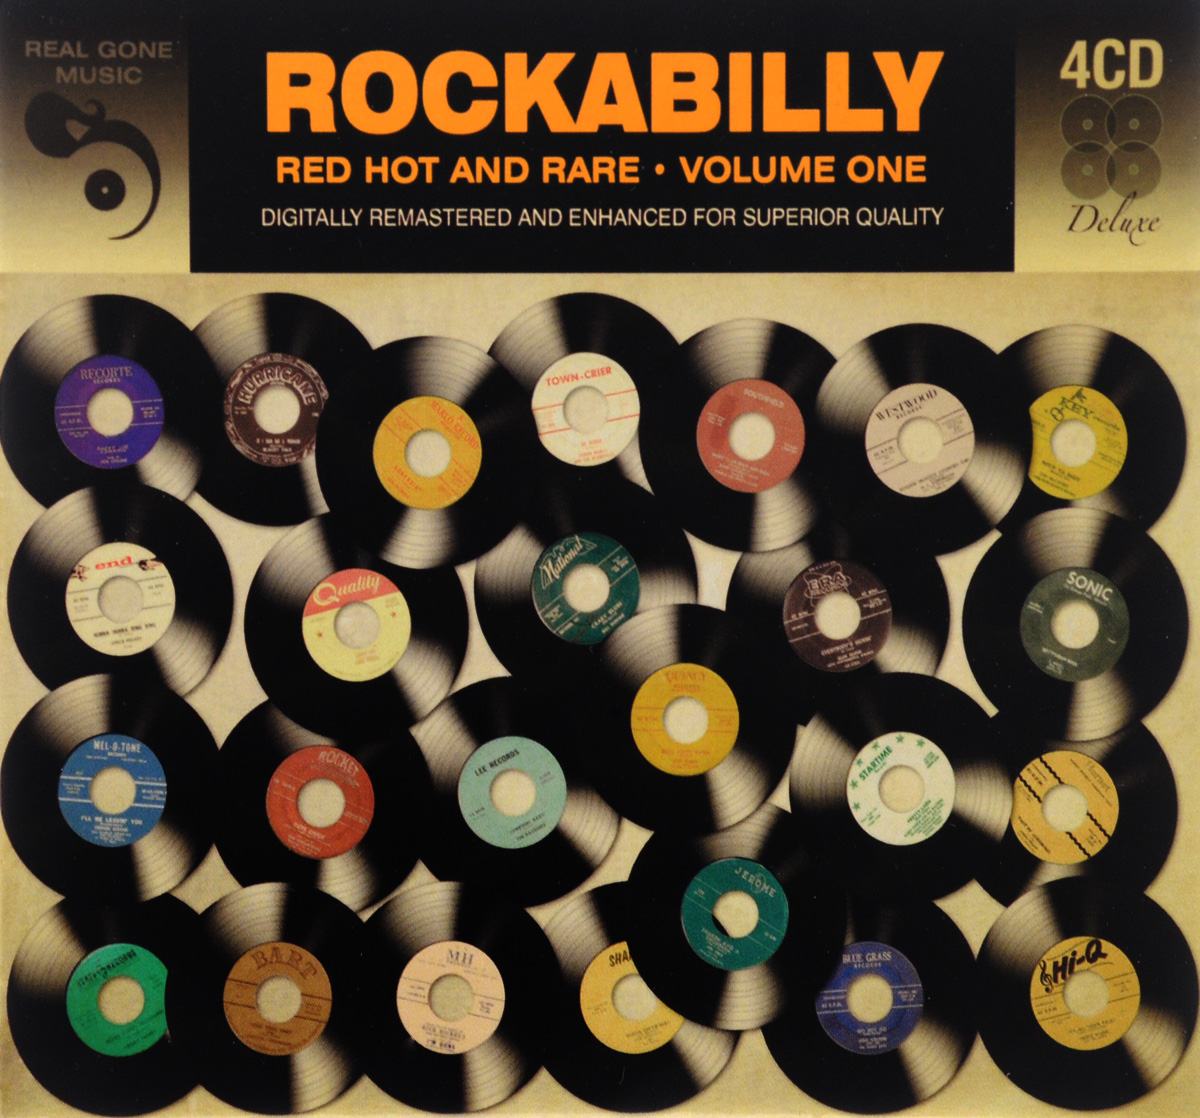 Rockabilly Red Hot & Rare. Volume 1 (4 CD)